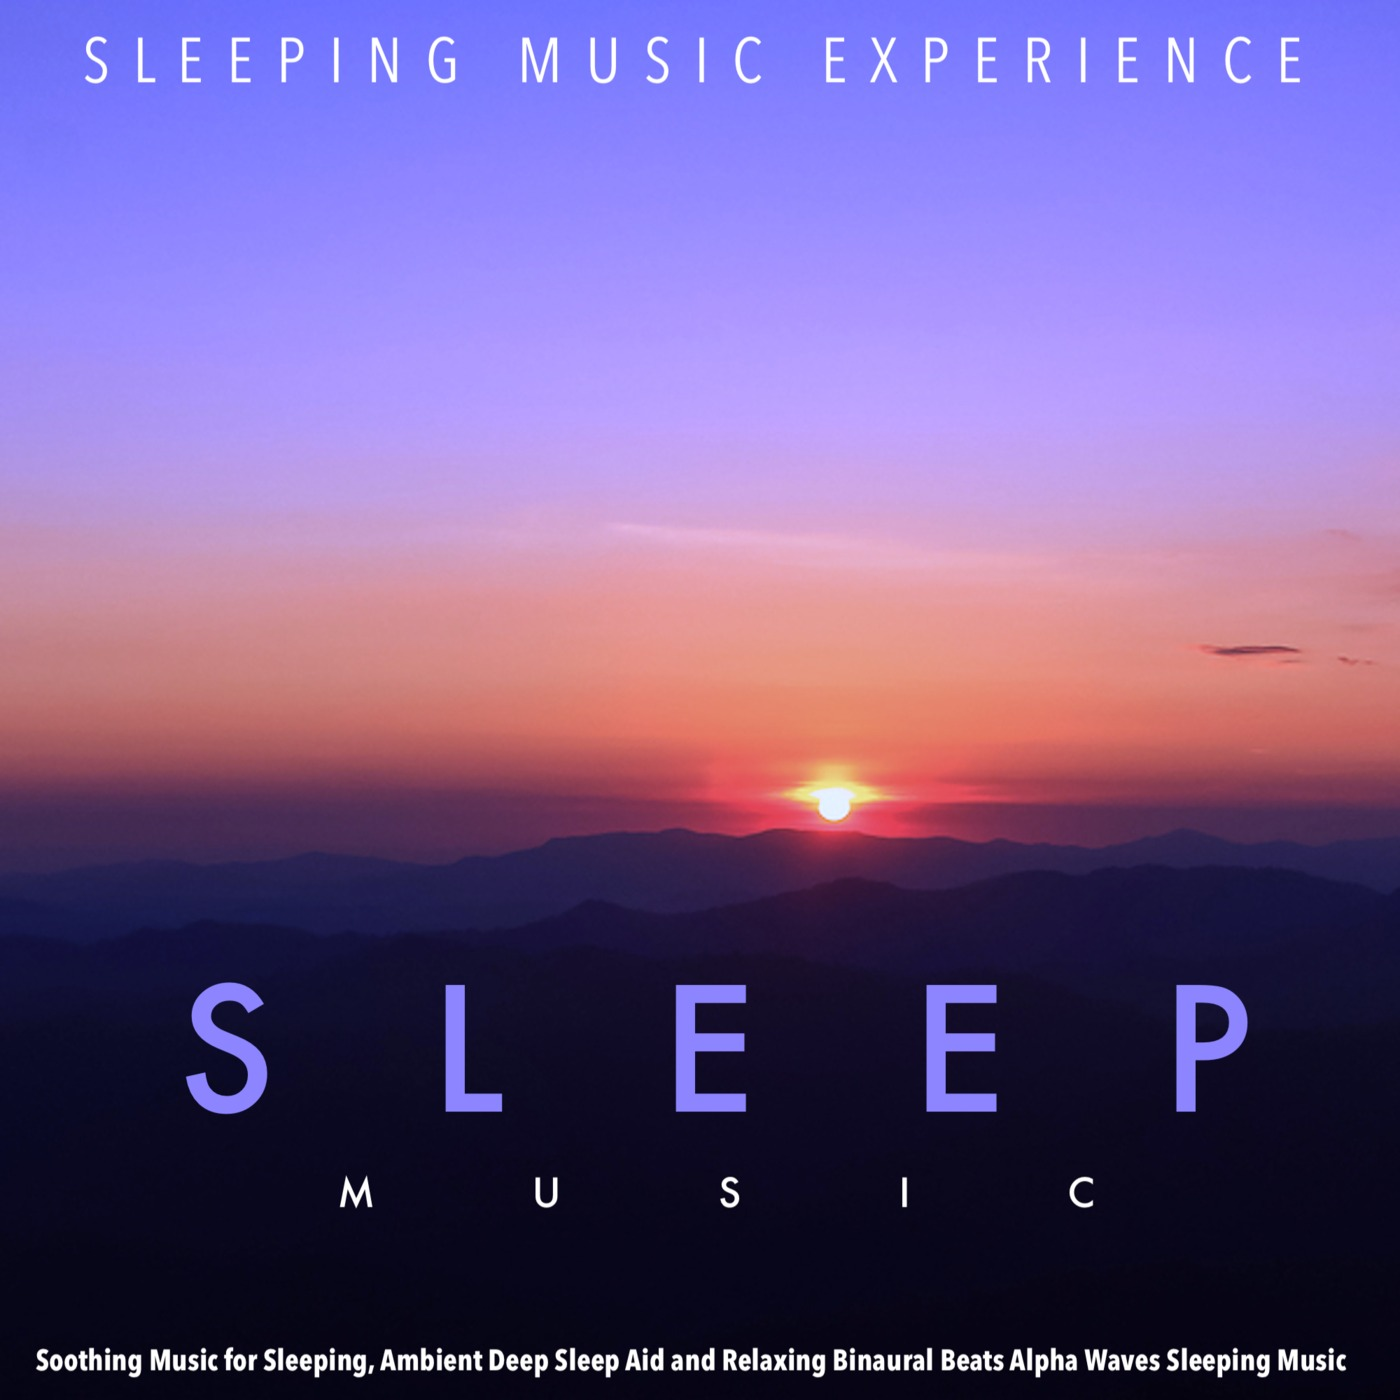 Listen Free to Sleeping Music Experience - Soft Music for